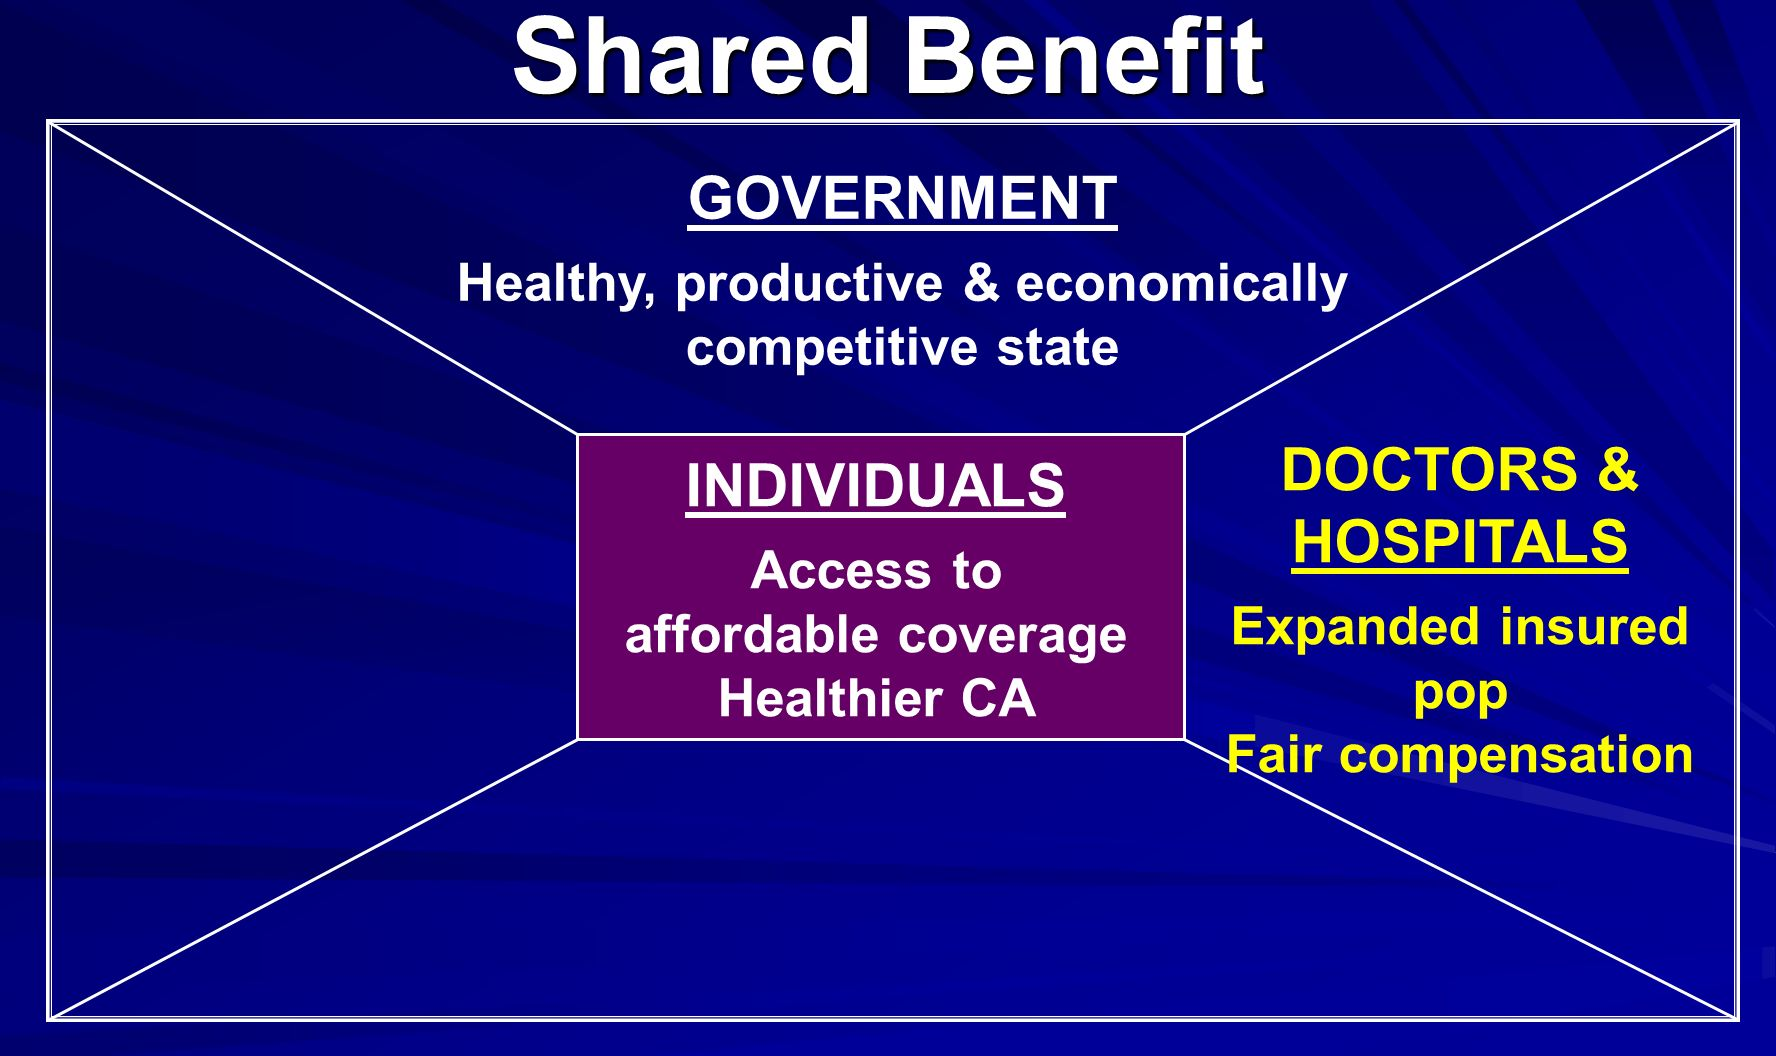 GOVERNMENT Healthy, productive & economically competitive state DOCTORS & HOSPITALS Expanded insured pop Fair compensation Shared Benefit INDIVIDUALS Access to affordable coverage Healthier CA